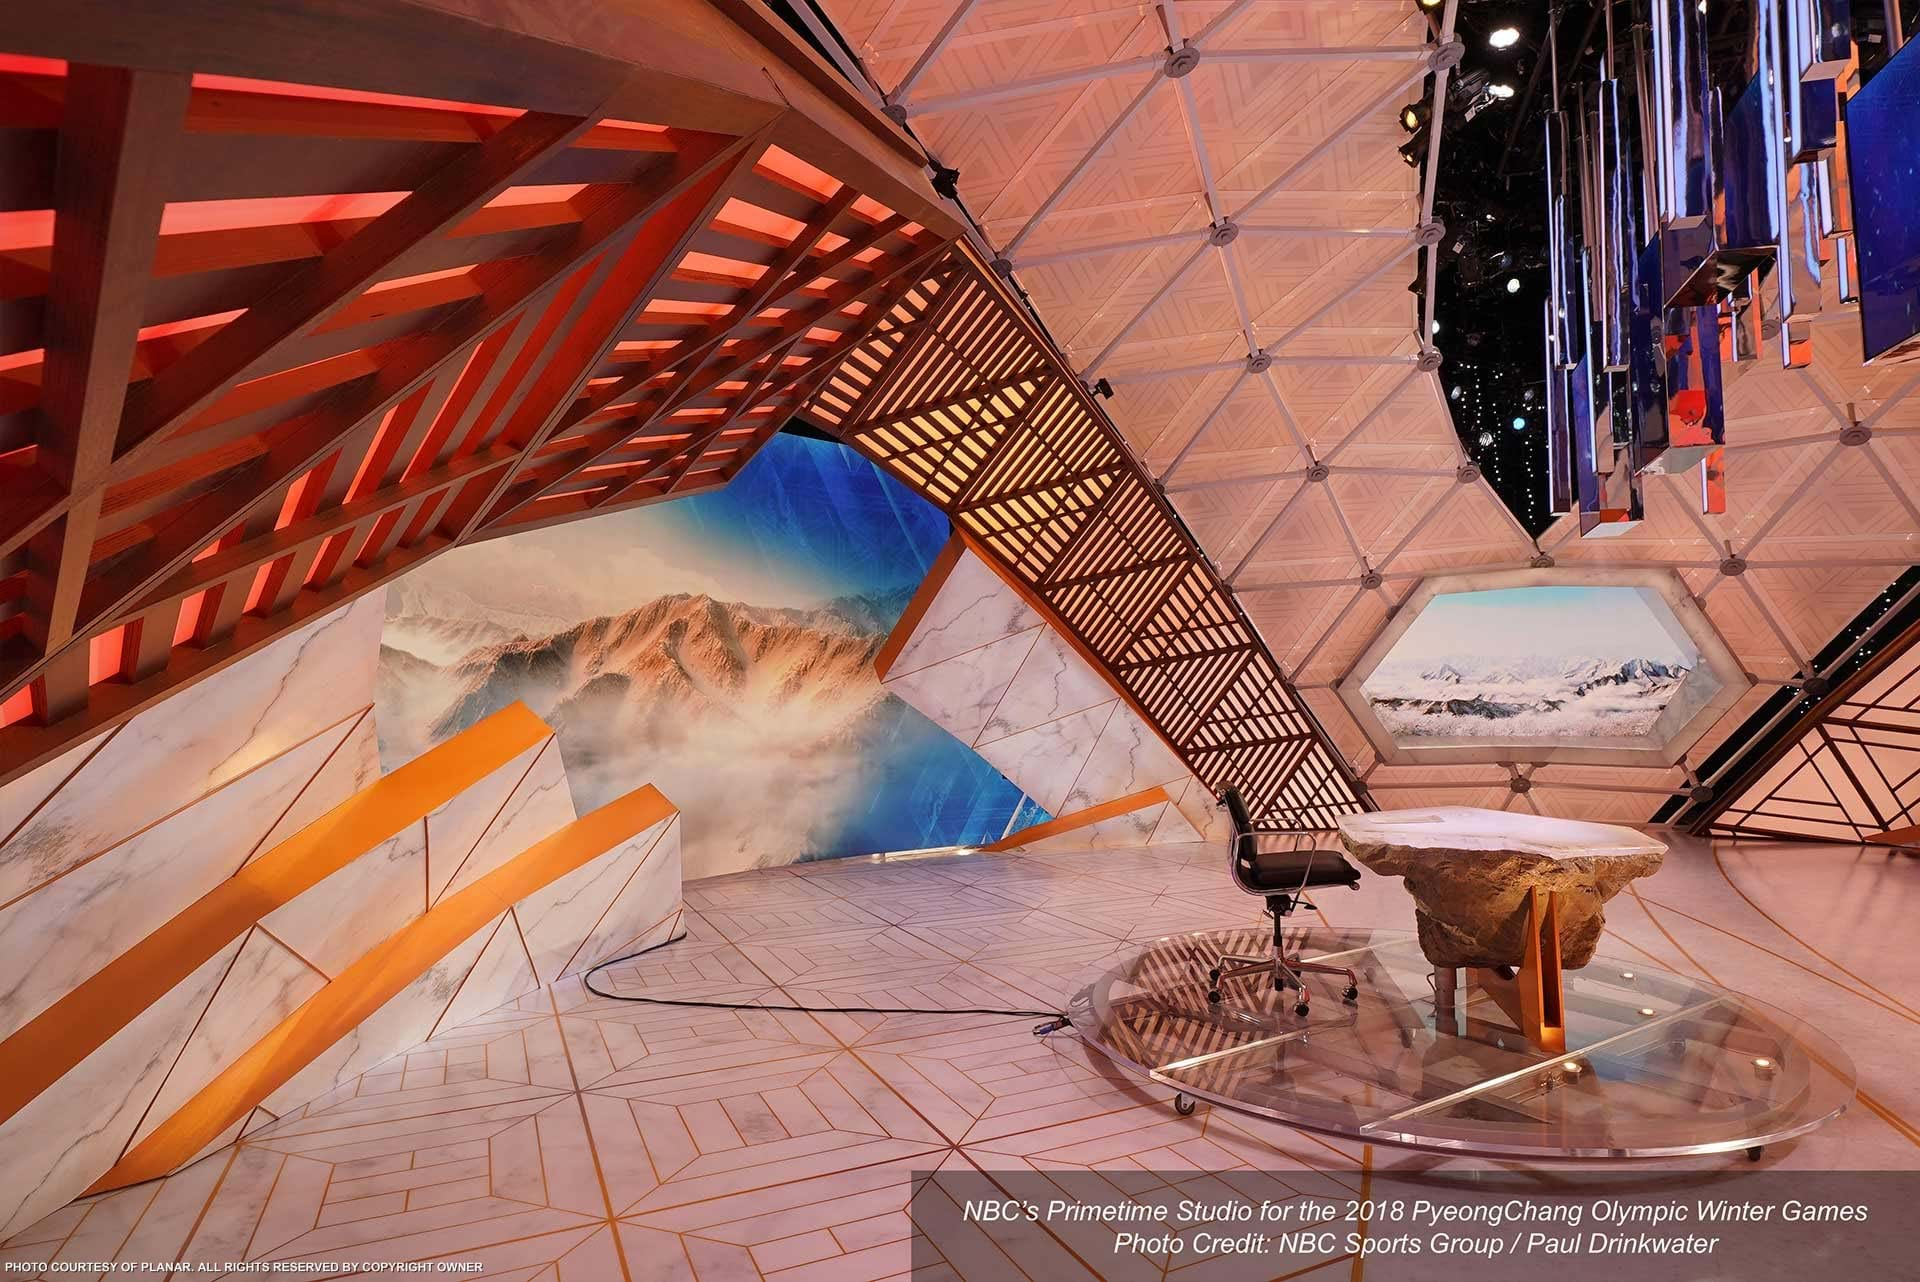 NBC 2018 Winter Olympics Studio Image